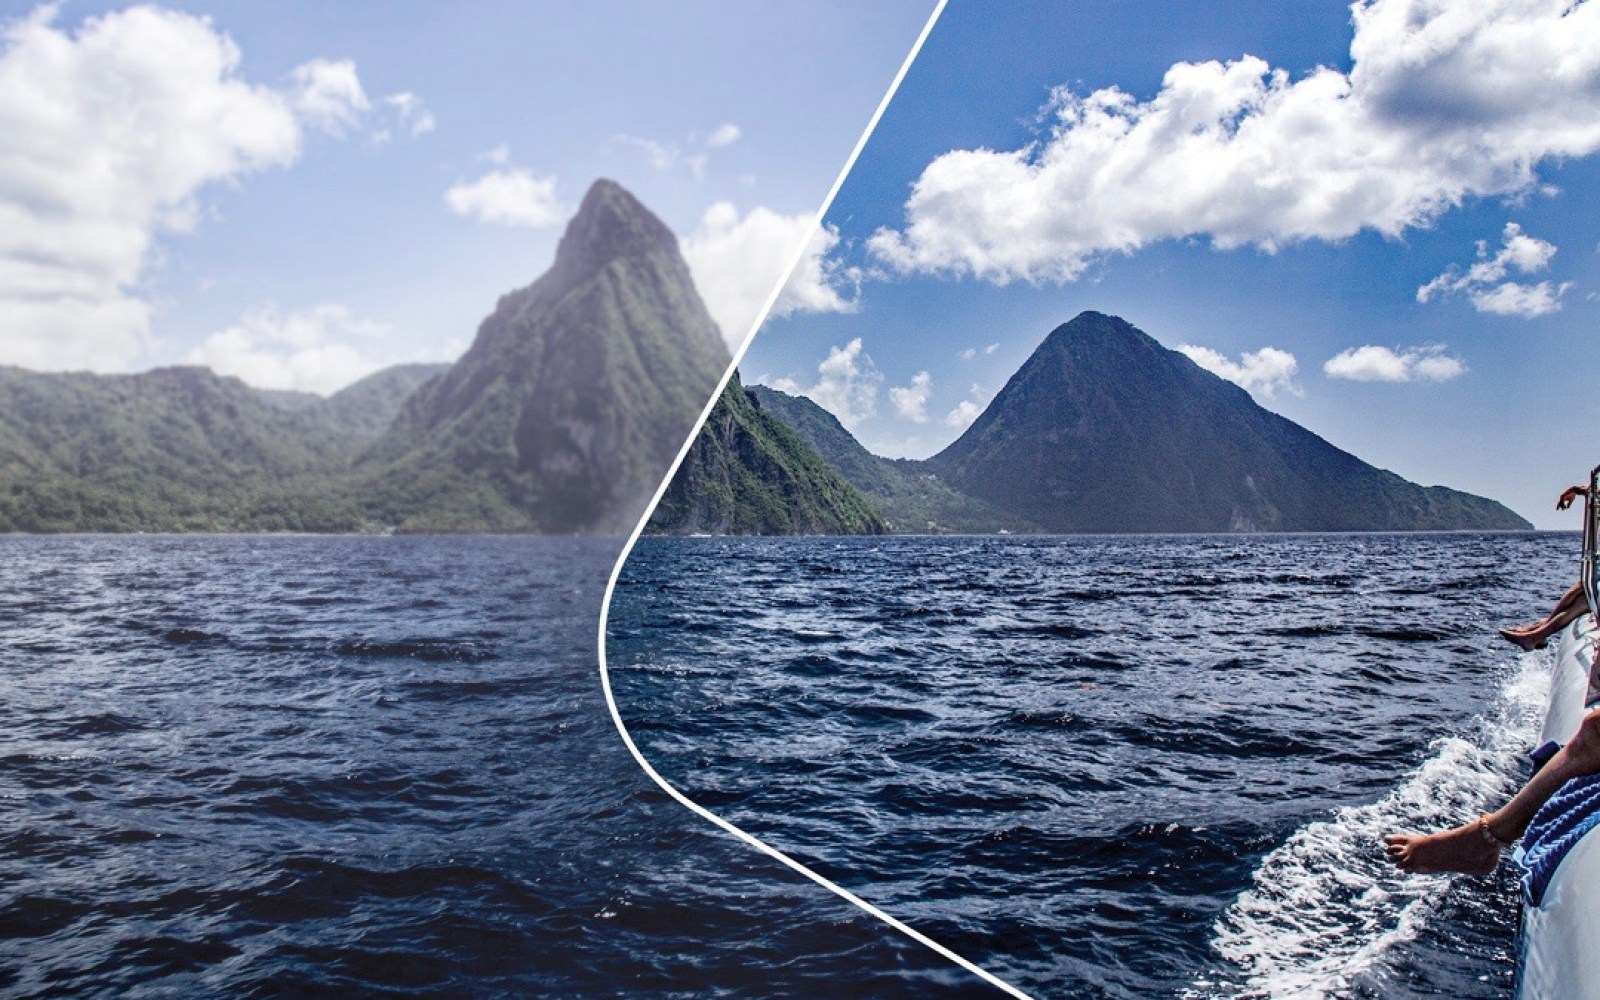 Adobe shows off upgraded Photoshop and Premiere Elements 14 with camera shake removal, motion titles, more